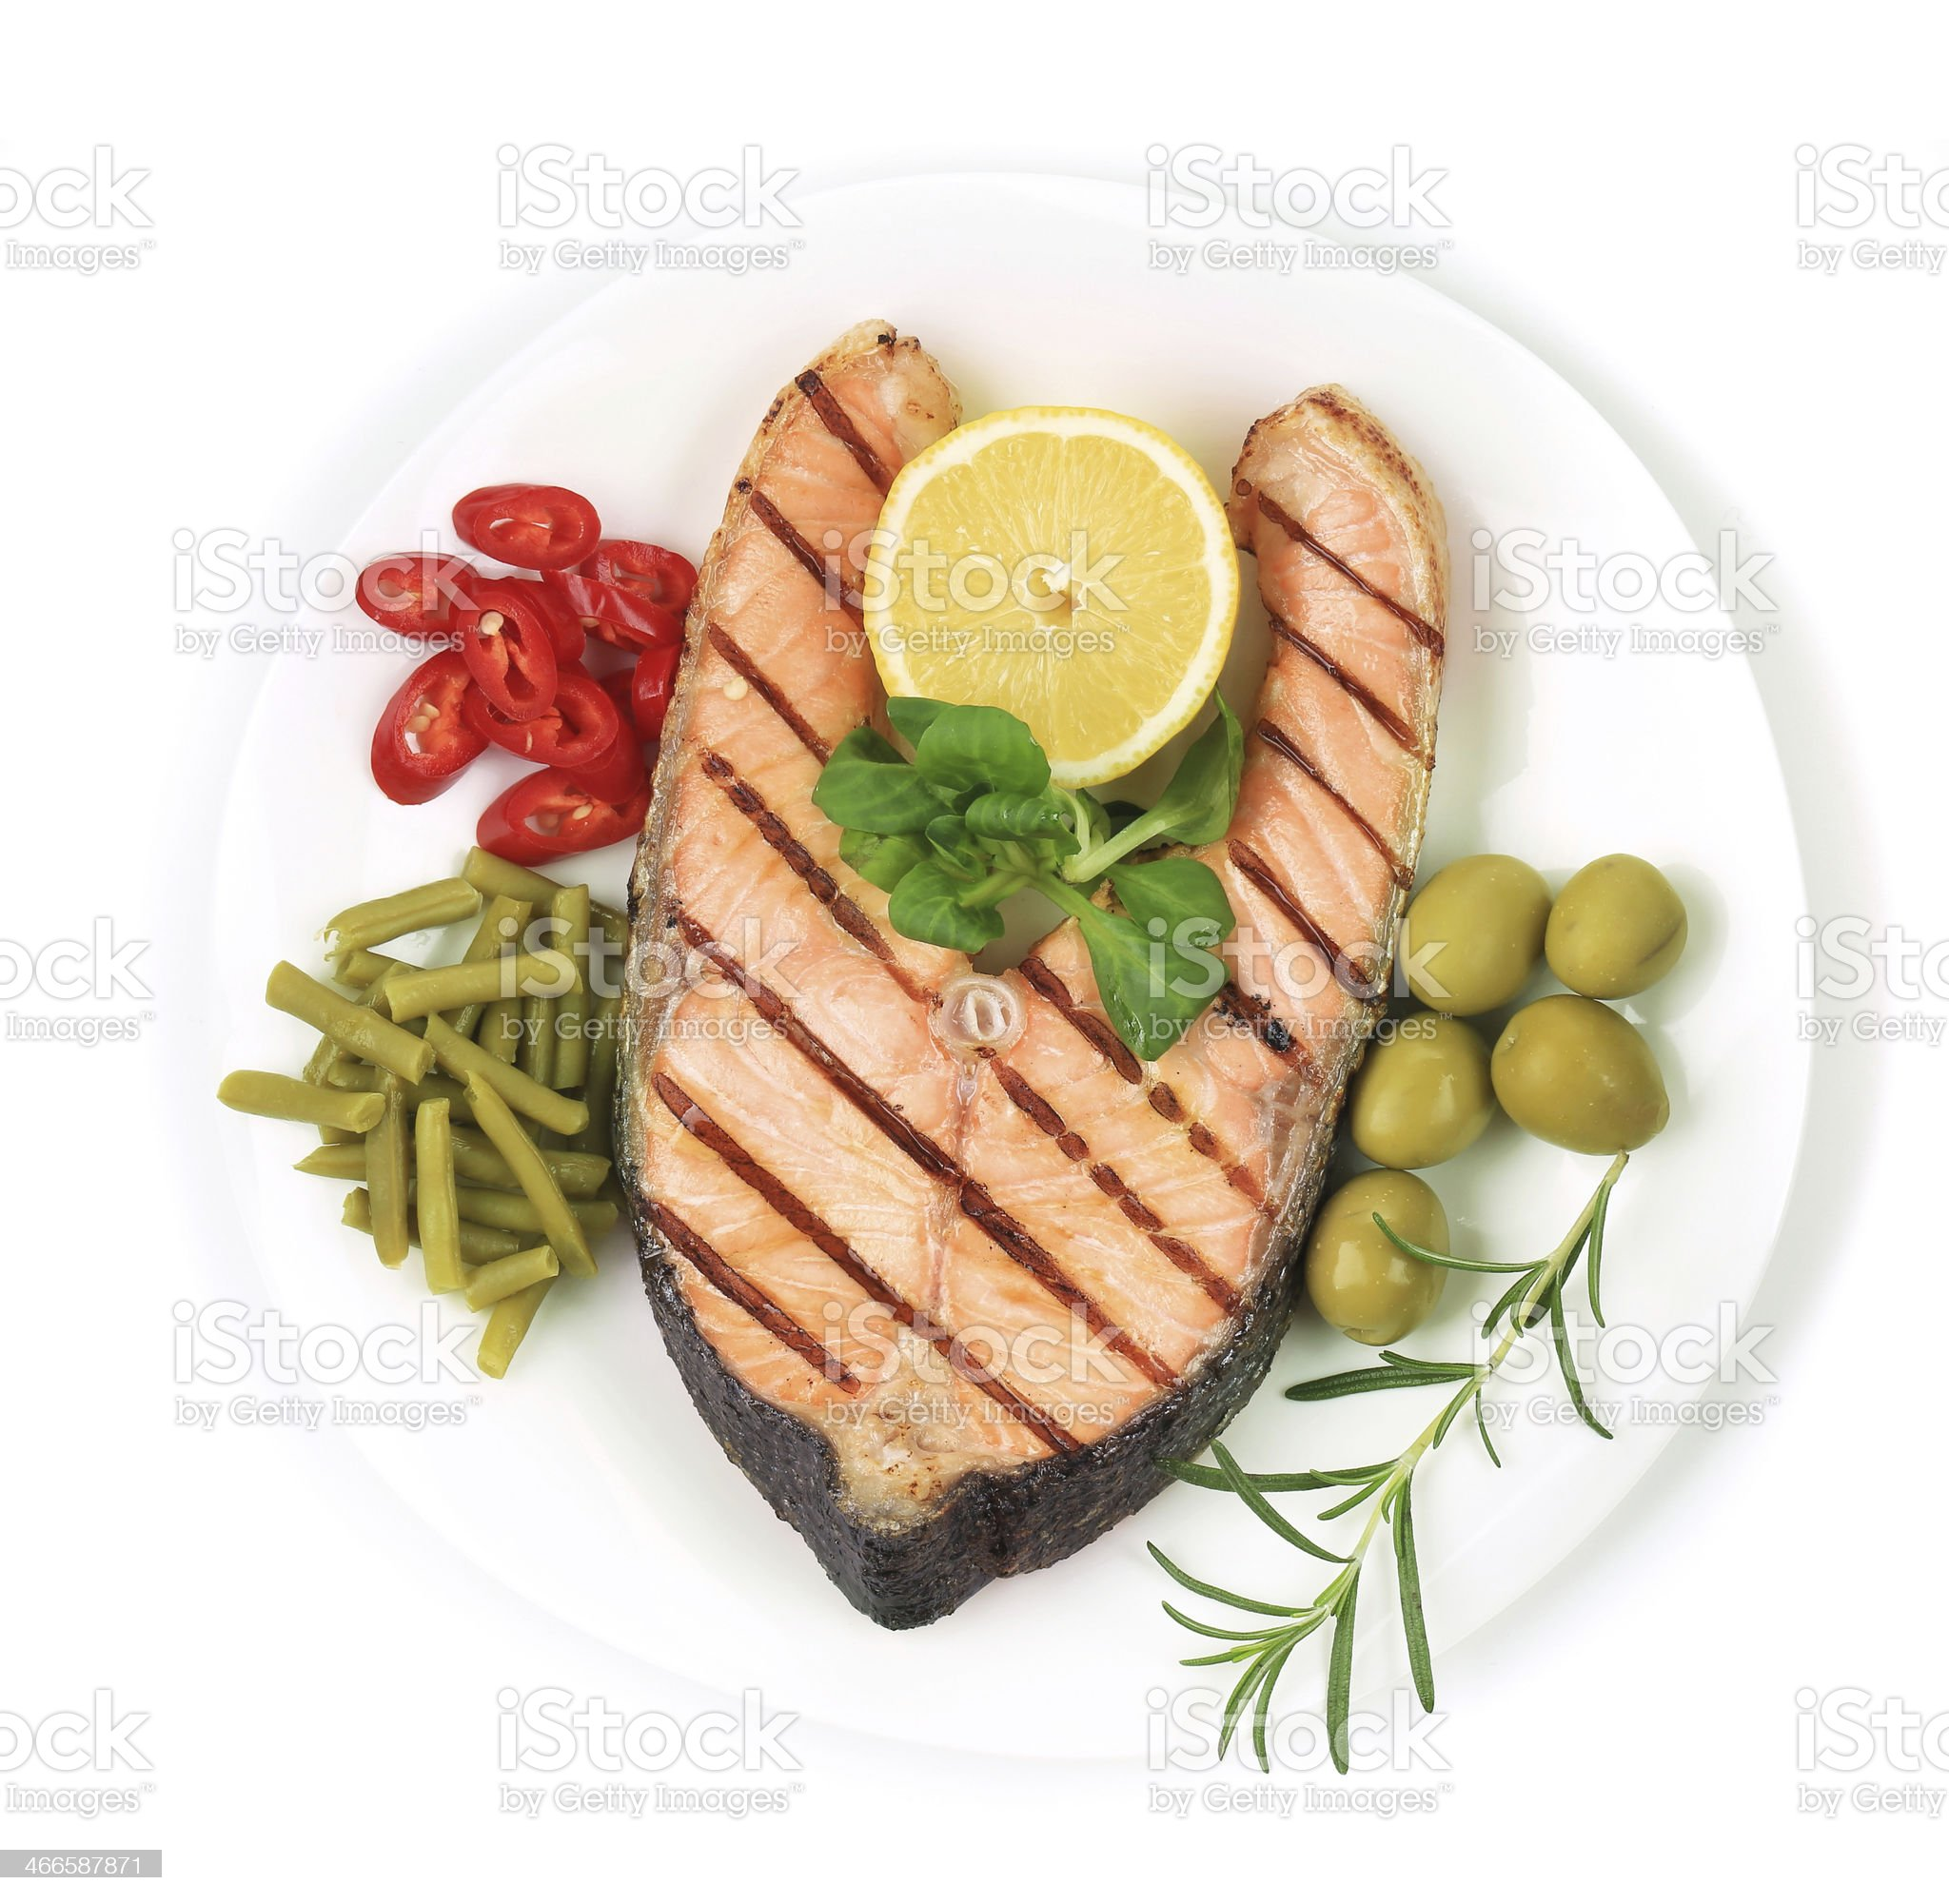 White plate of salmon steak with vegetables. royalty-free stock photo